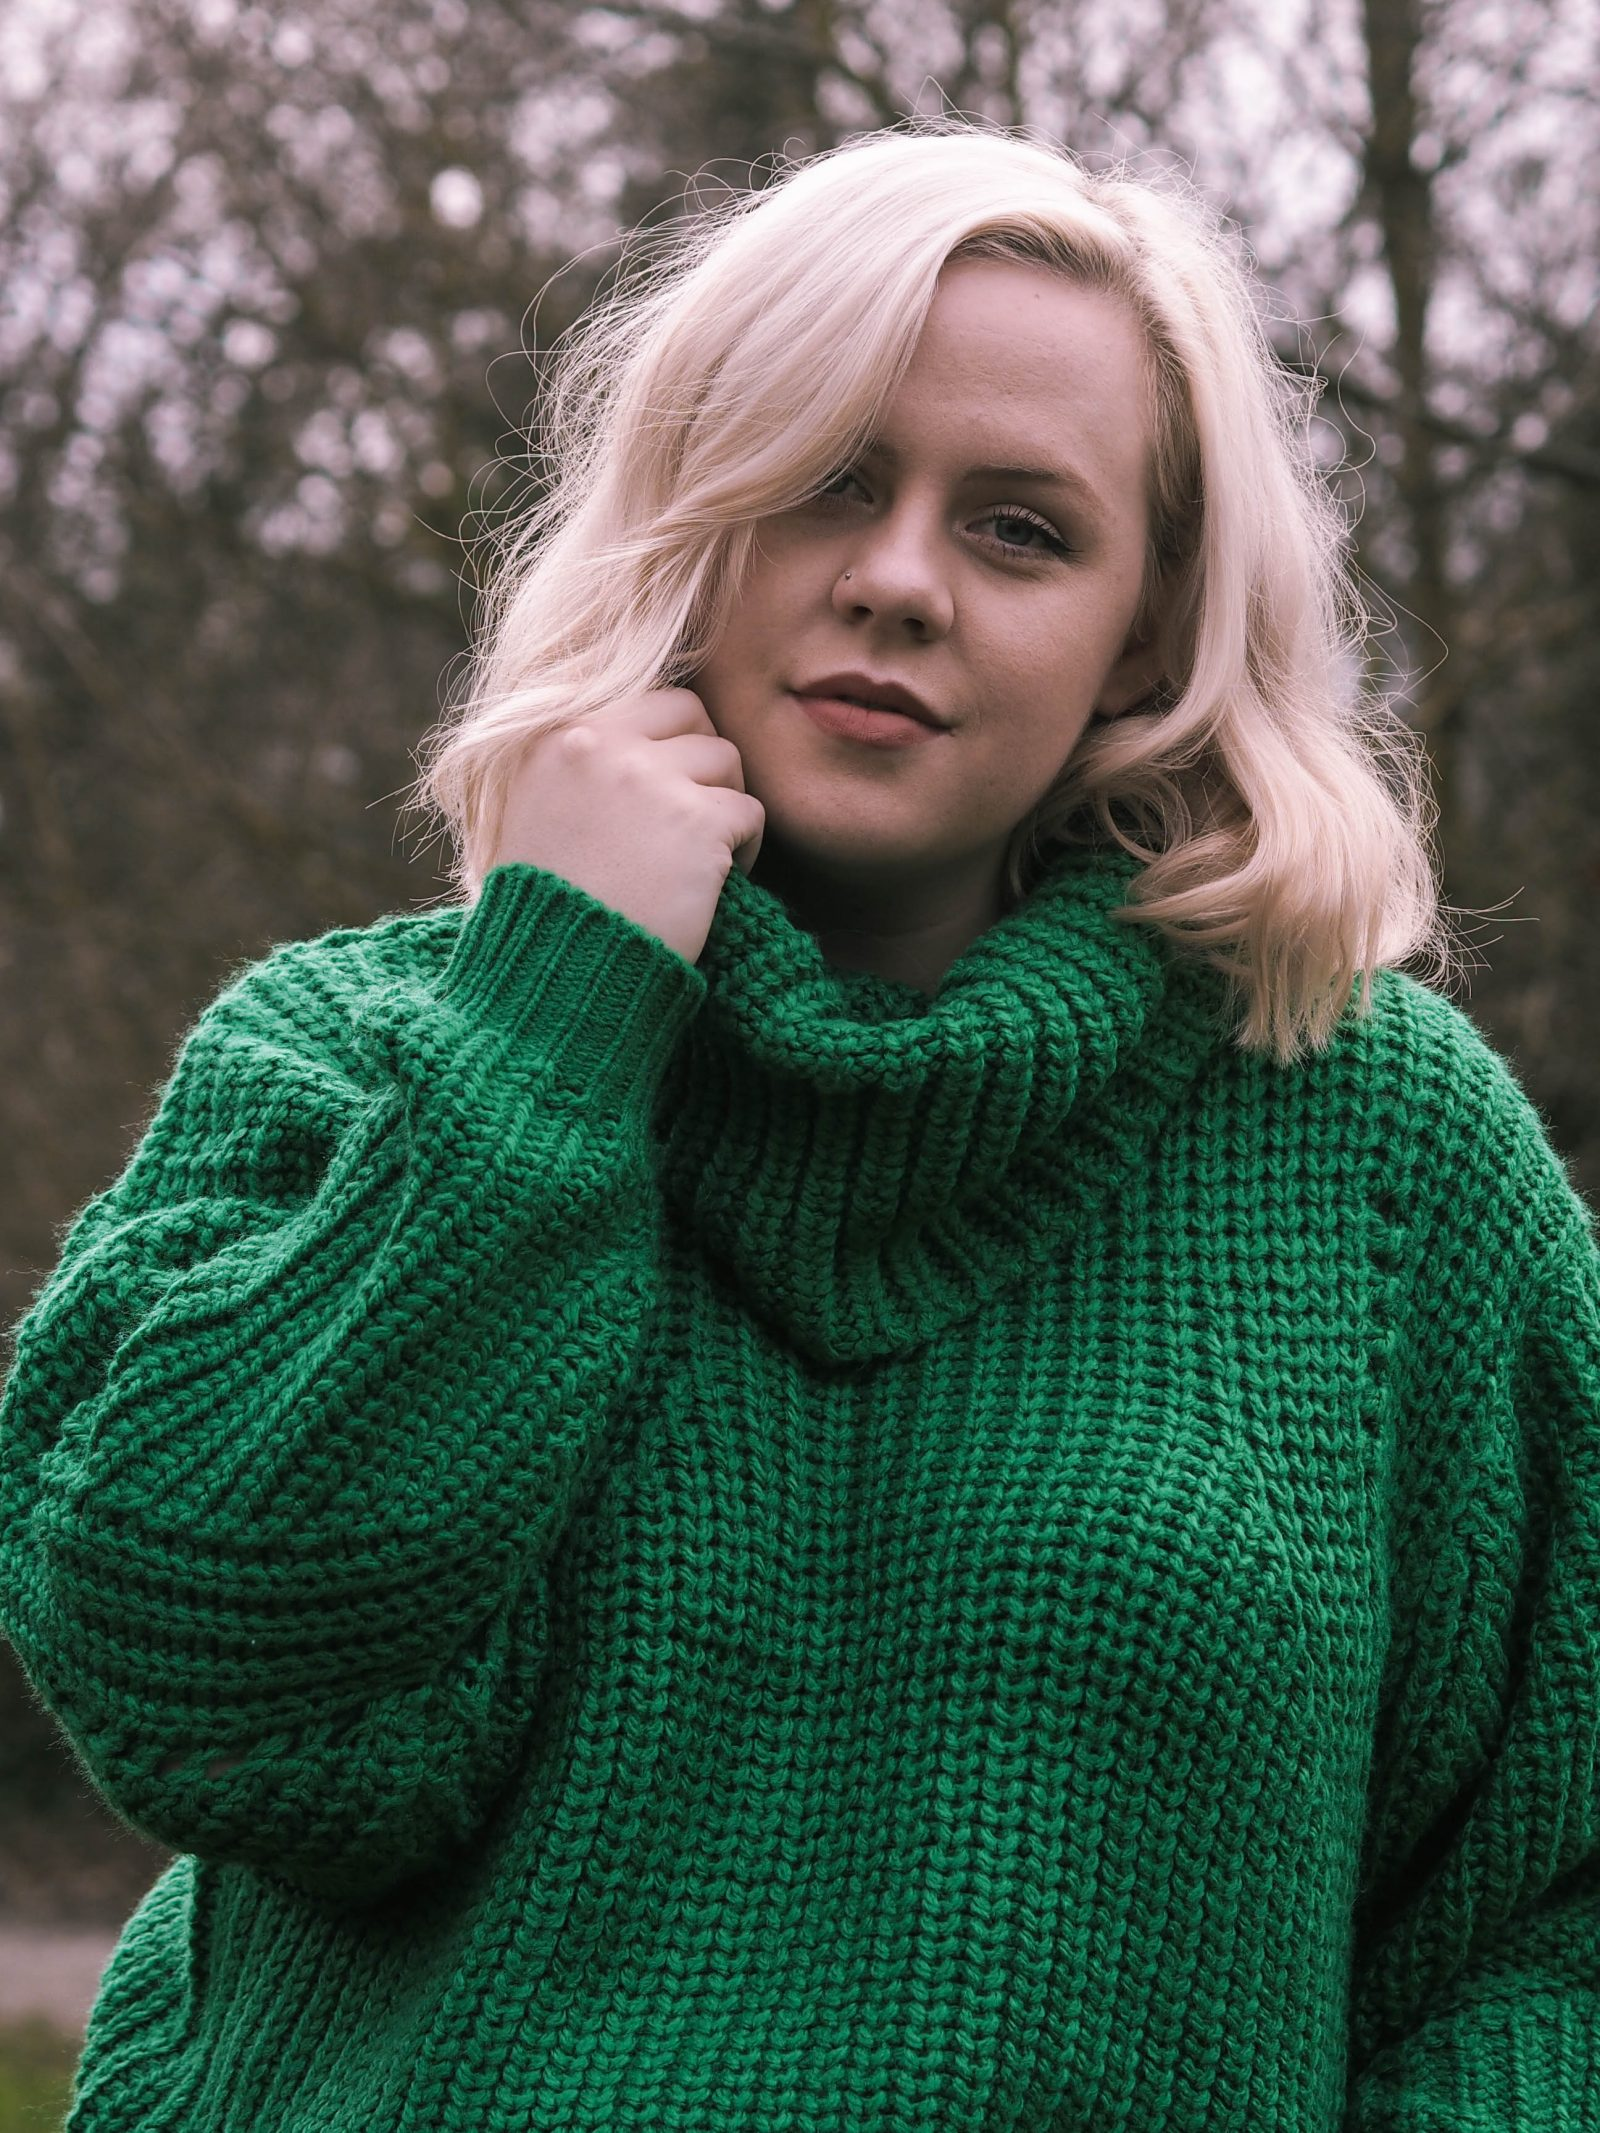 The super snuggly green jumper | rhianna olivia